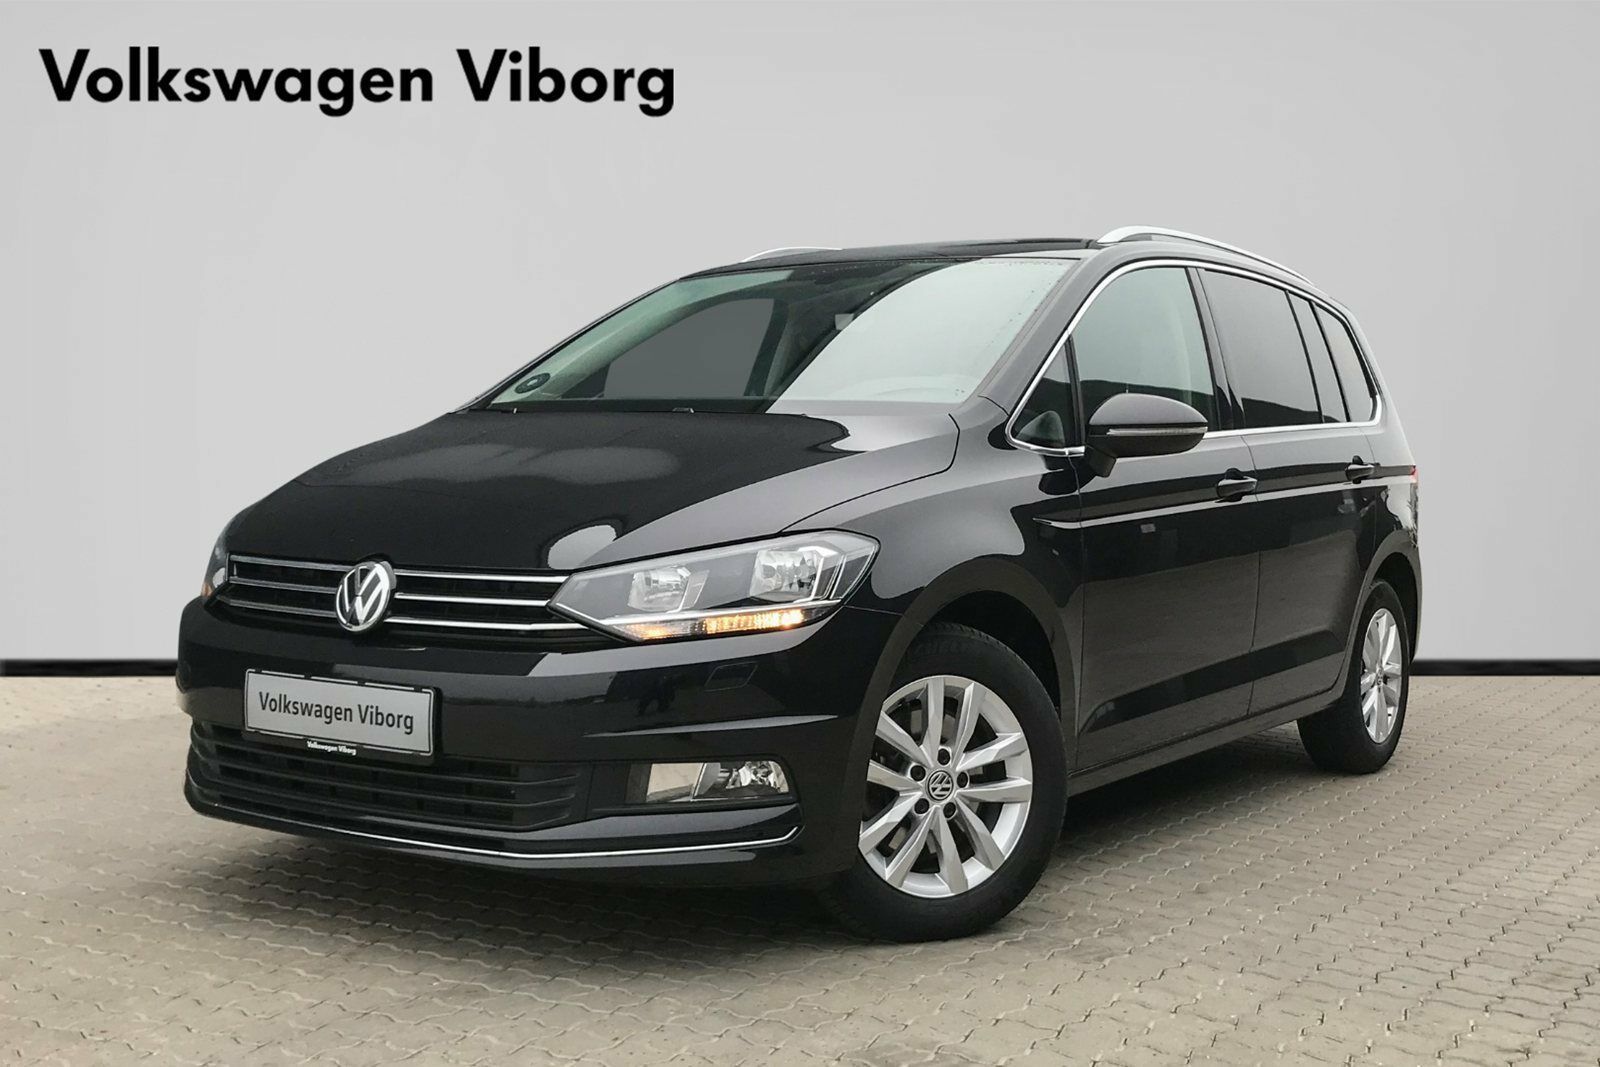 VW Touran 2,0 TDi 150 Highline DSG BMT 5d - 344.900 kr.